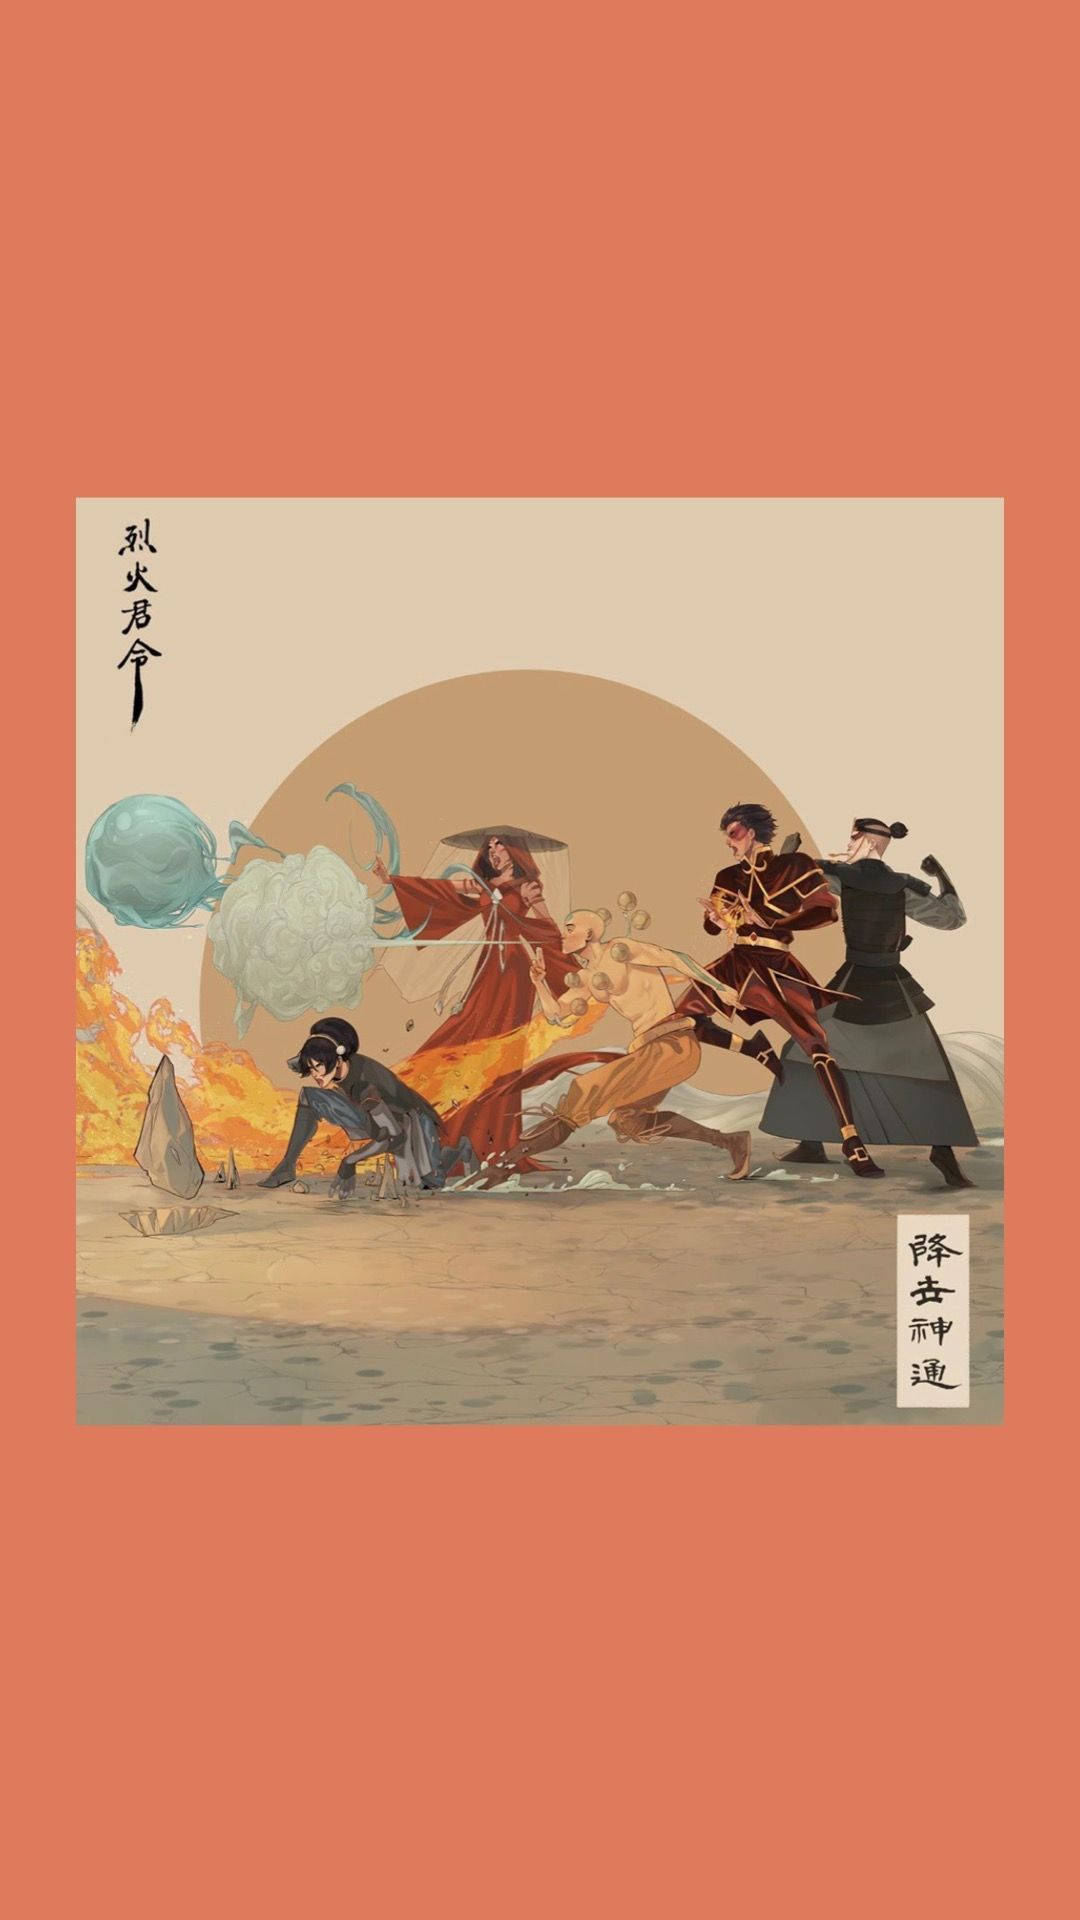 Cassidyedwords Avatar The Last Airbender Wallpaper Iphone Art By Oliussart Or Olidraws On Instagram A Avatar Cartoon Avatar Airbender Avatar Characters